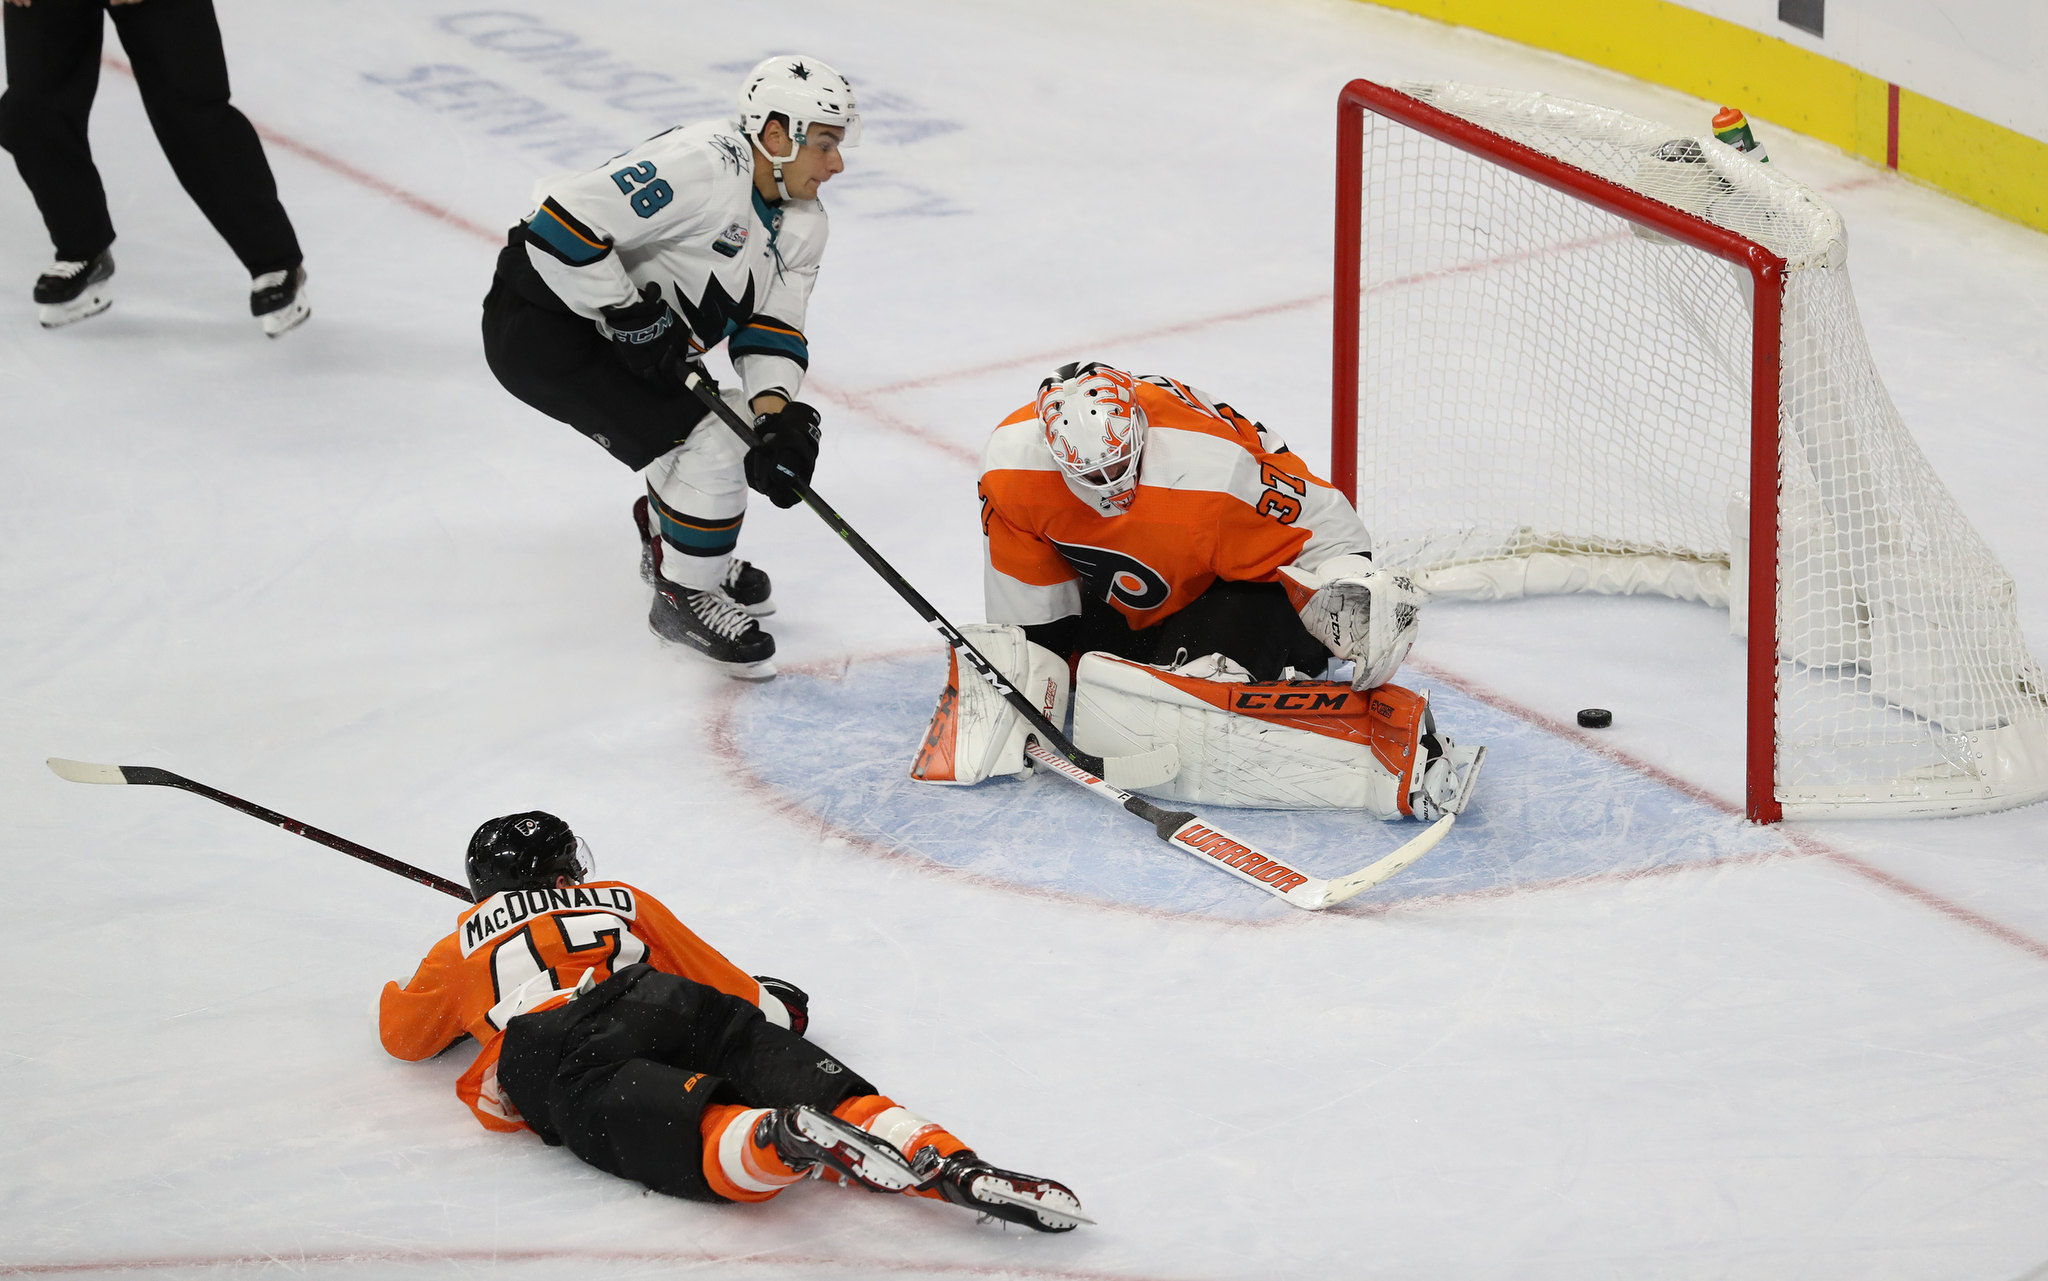 Timo Meier, center, of the Sharks scores between the legs of Brian Elliott, right, of the Flyers.  Andrew MacDonald is left. The Flyers take the ice in their home opener against the Sharks on Oct. 9, 2018.    CHARLES FOX / Staff Photographer